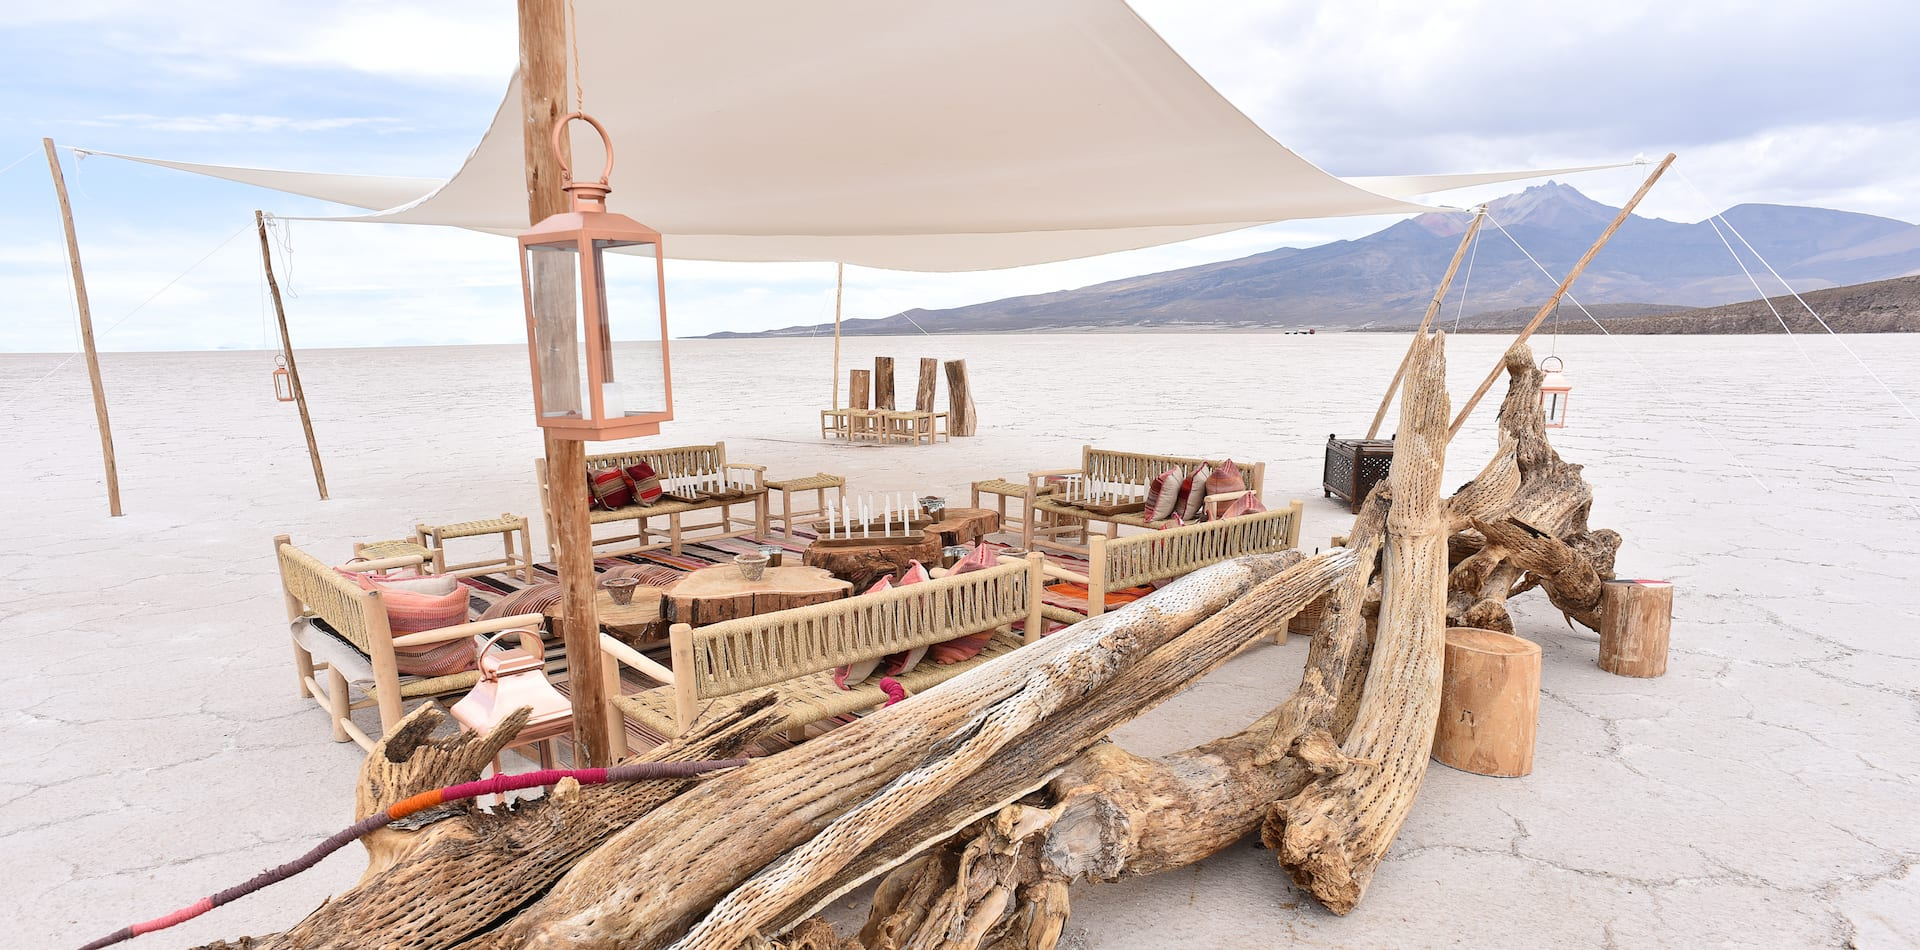 Creative Dining in Yurt Camp Sajama, Bolivia Salt Flats